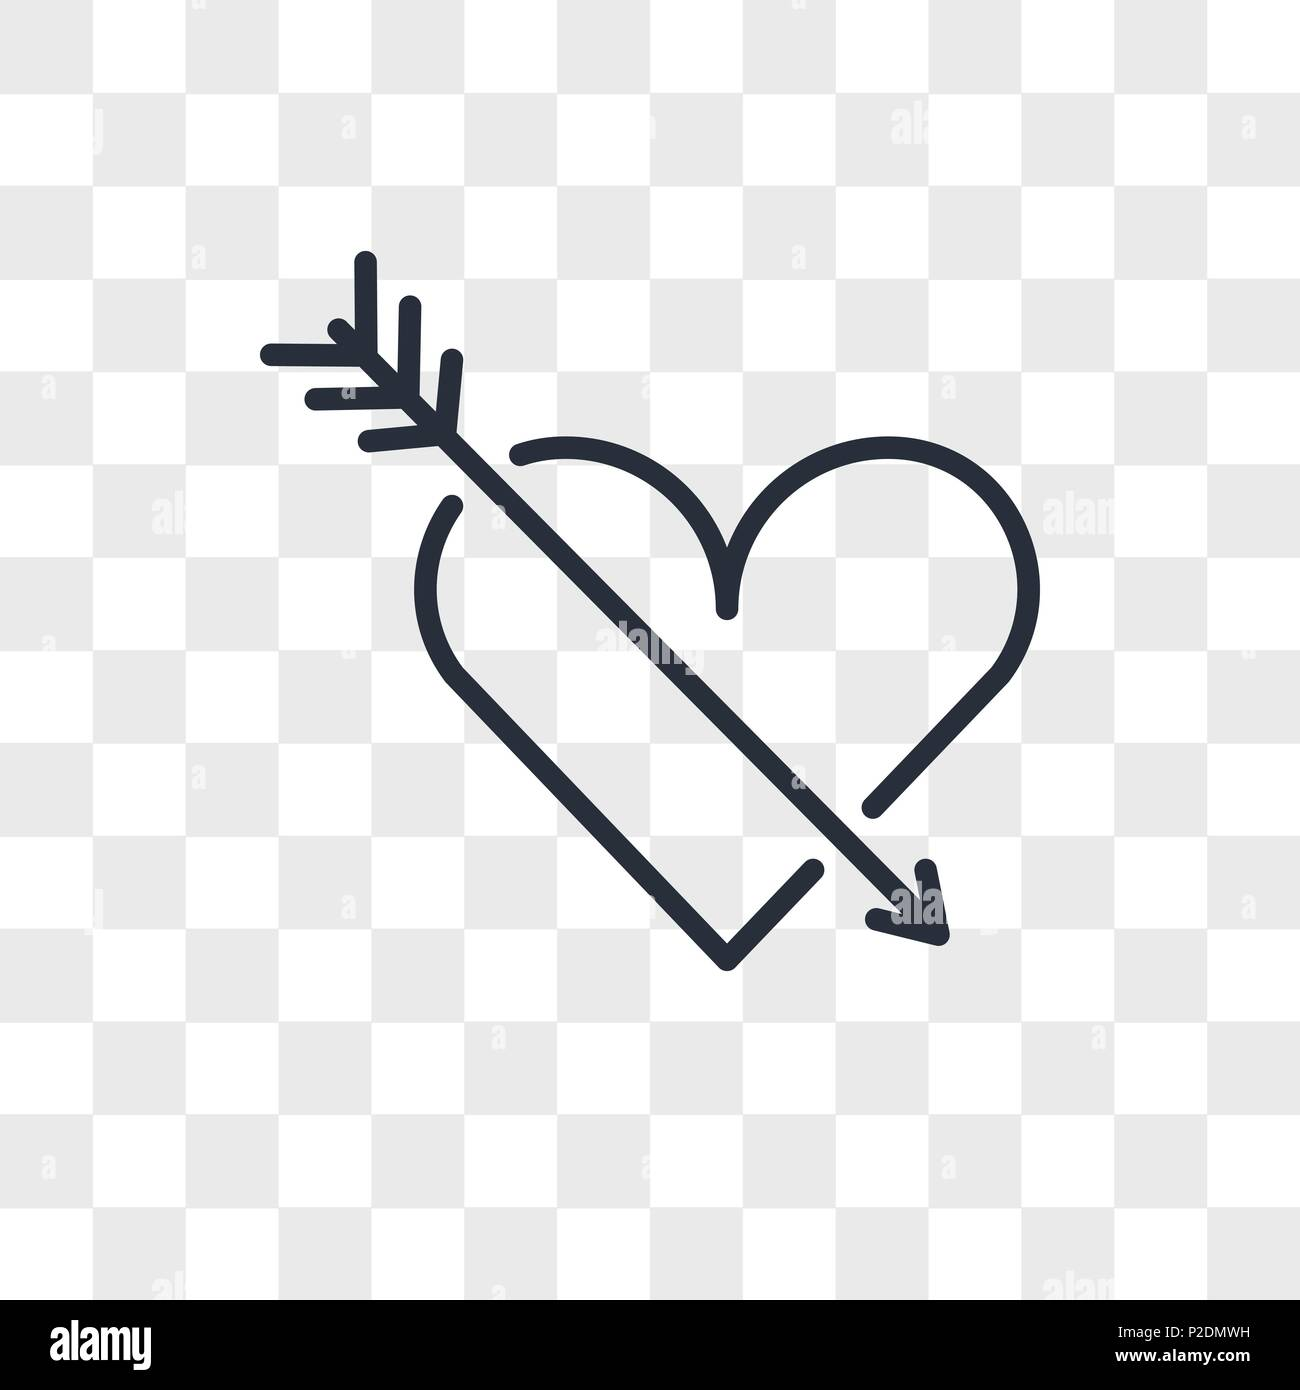 Heart vector icon isolated on transparent background, Heart